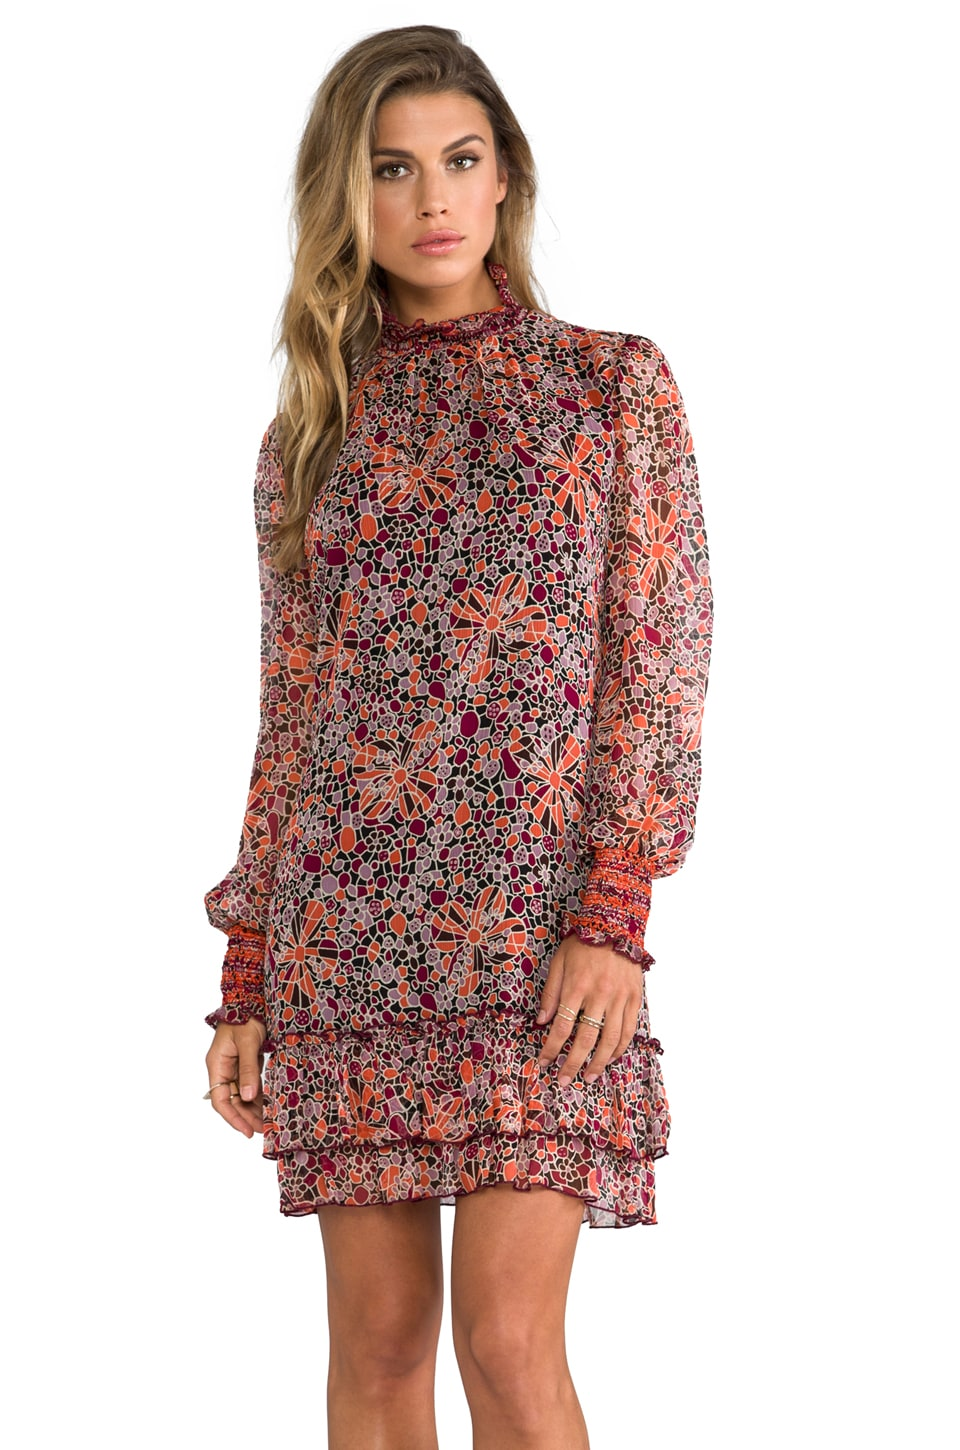 Anna Sui Pop Squares Printe Mesh and Mosaic Flora Print Crinkle Chiffon Long Sleeve Dress in Merlot